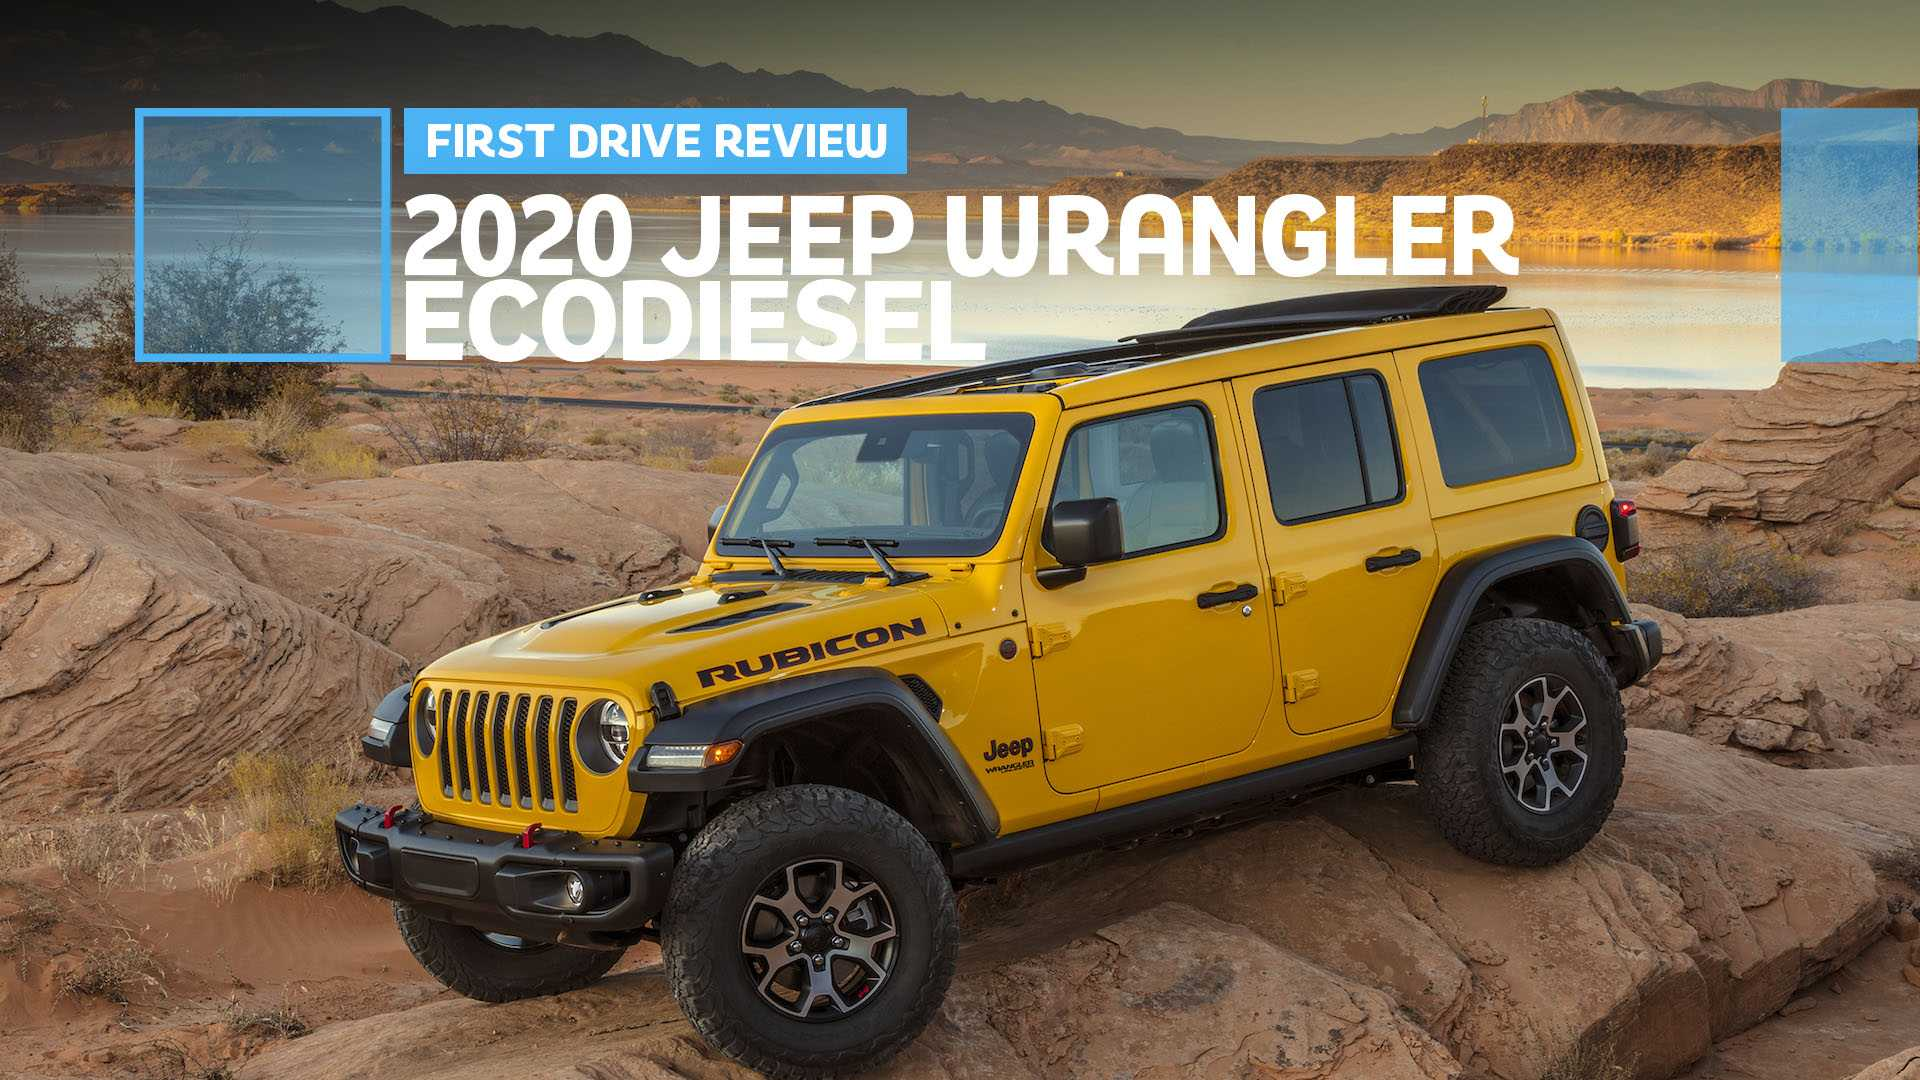 2020 Jeep Rubicon Ecodiesel For Sale